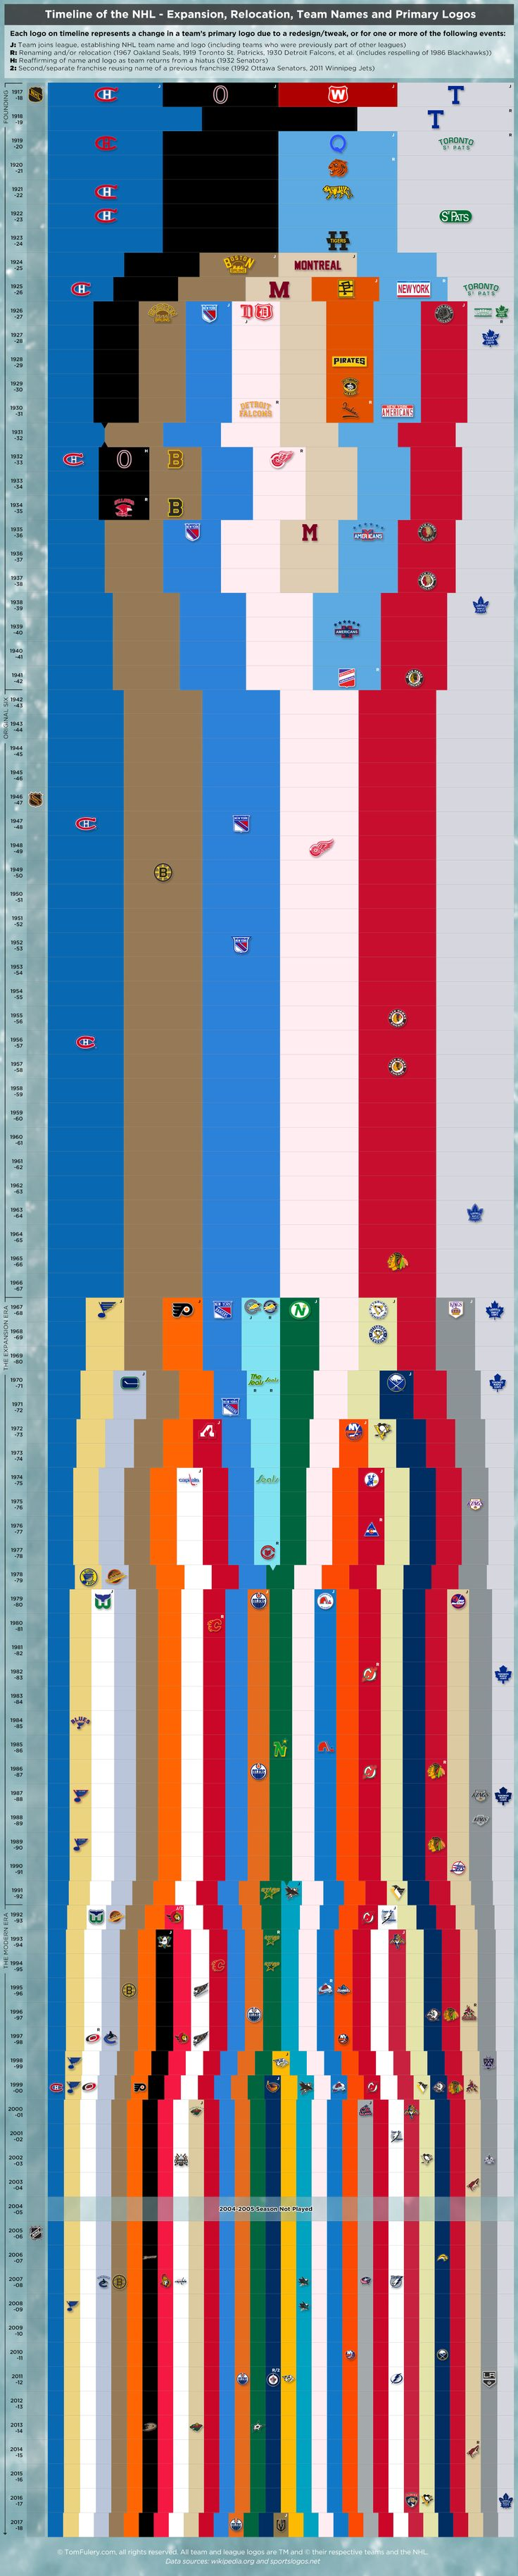 Timeline of the National Hockey League, Expansion, Relocation, Team Names, and Primary Logos